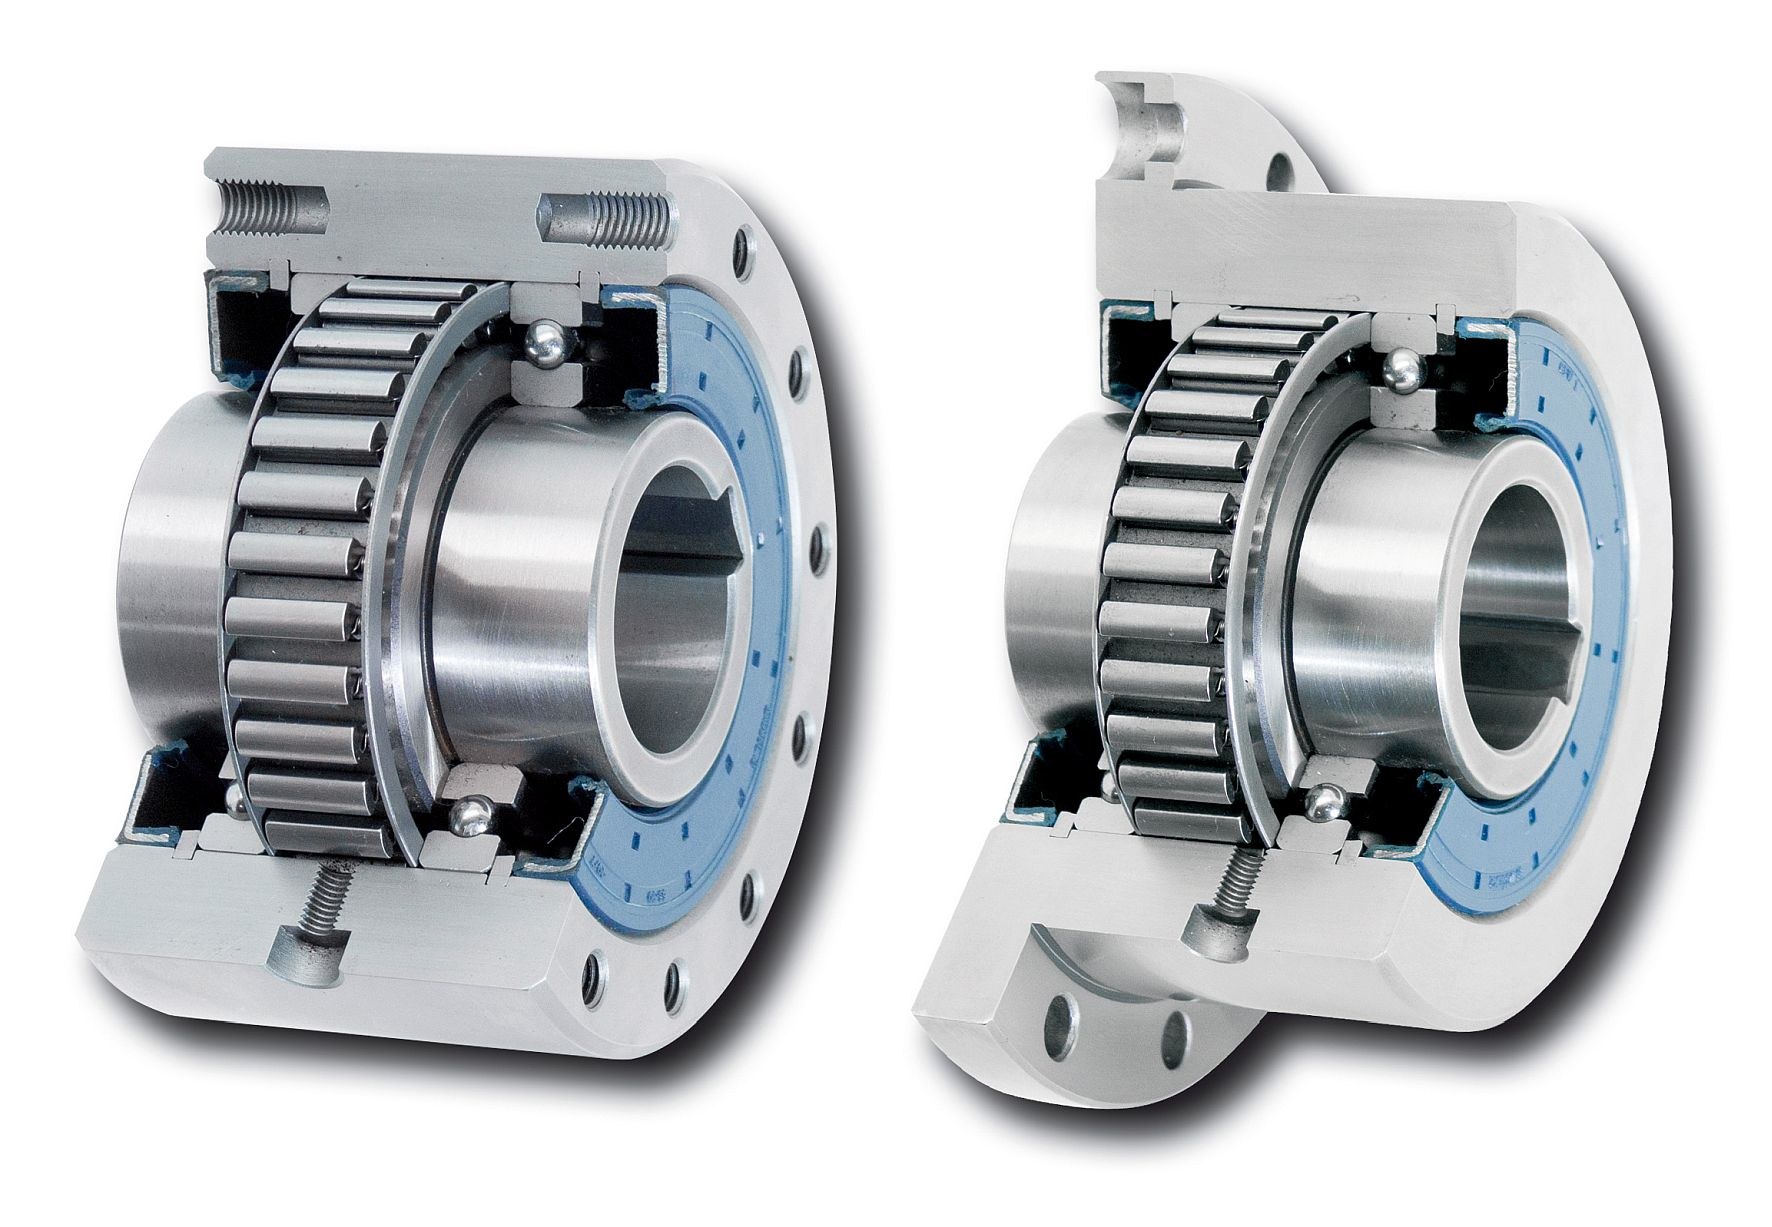 ready-to-install complete freewheels from RINGSPANN's FB and FBF series